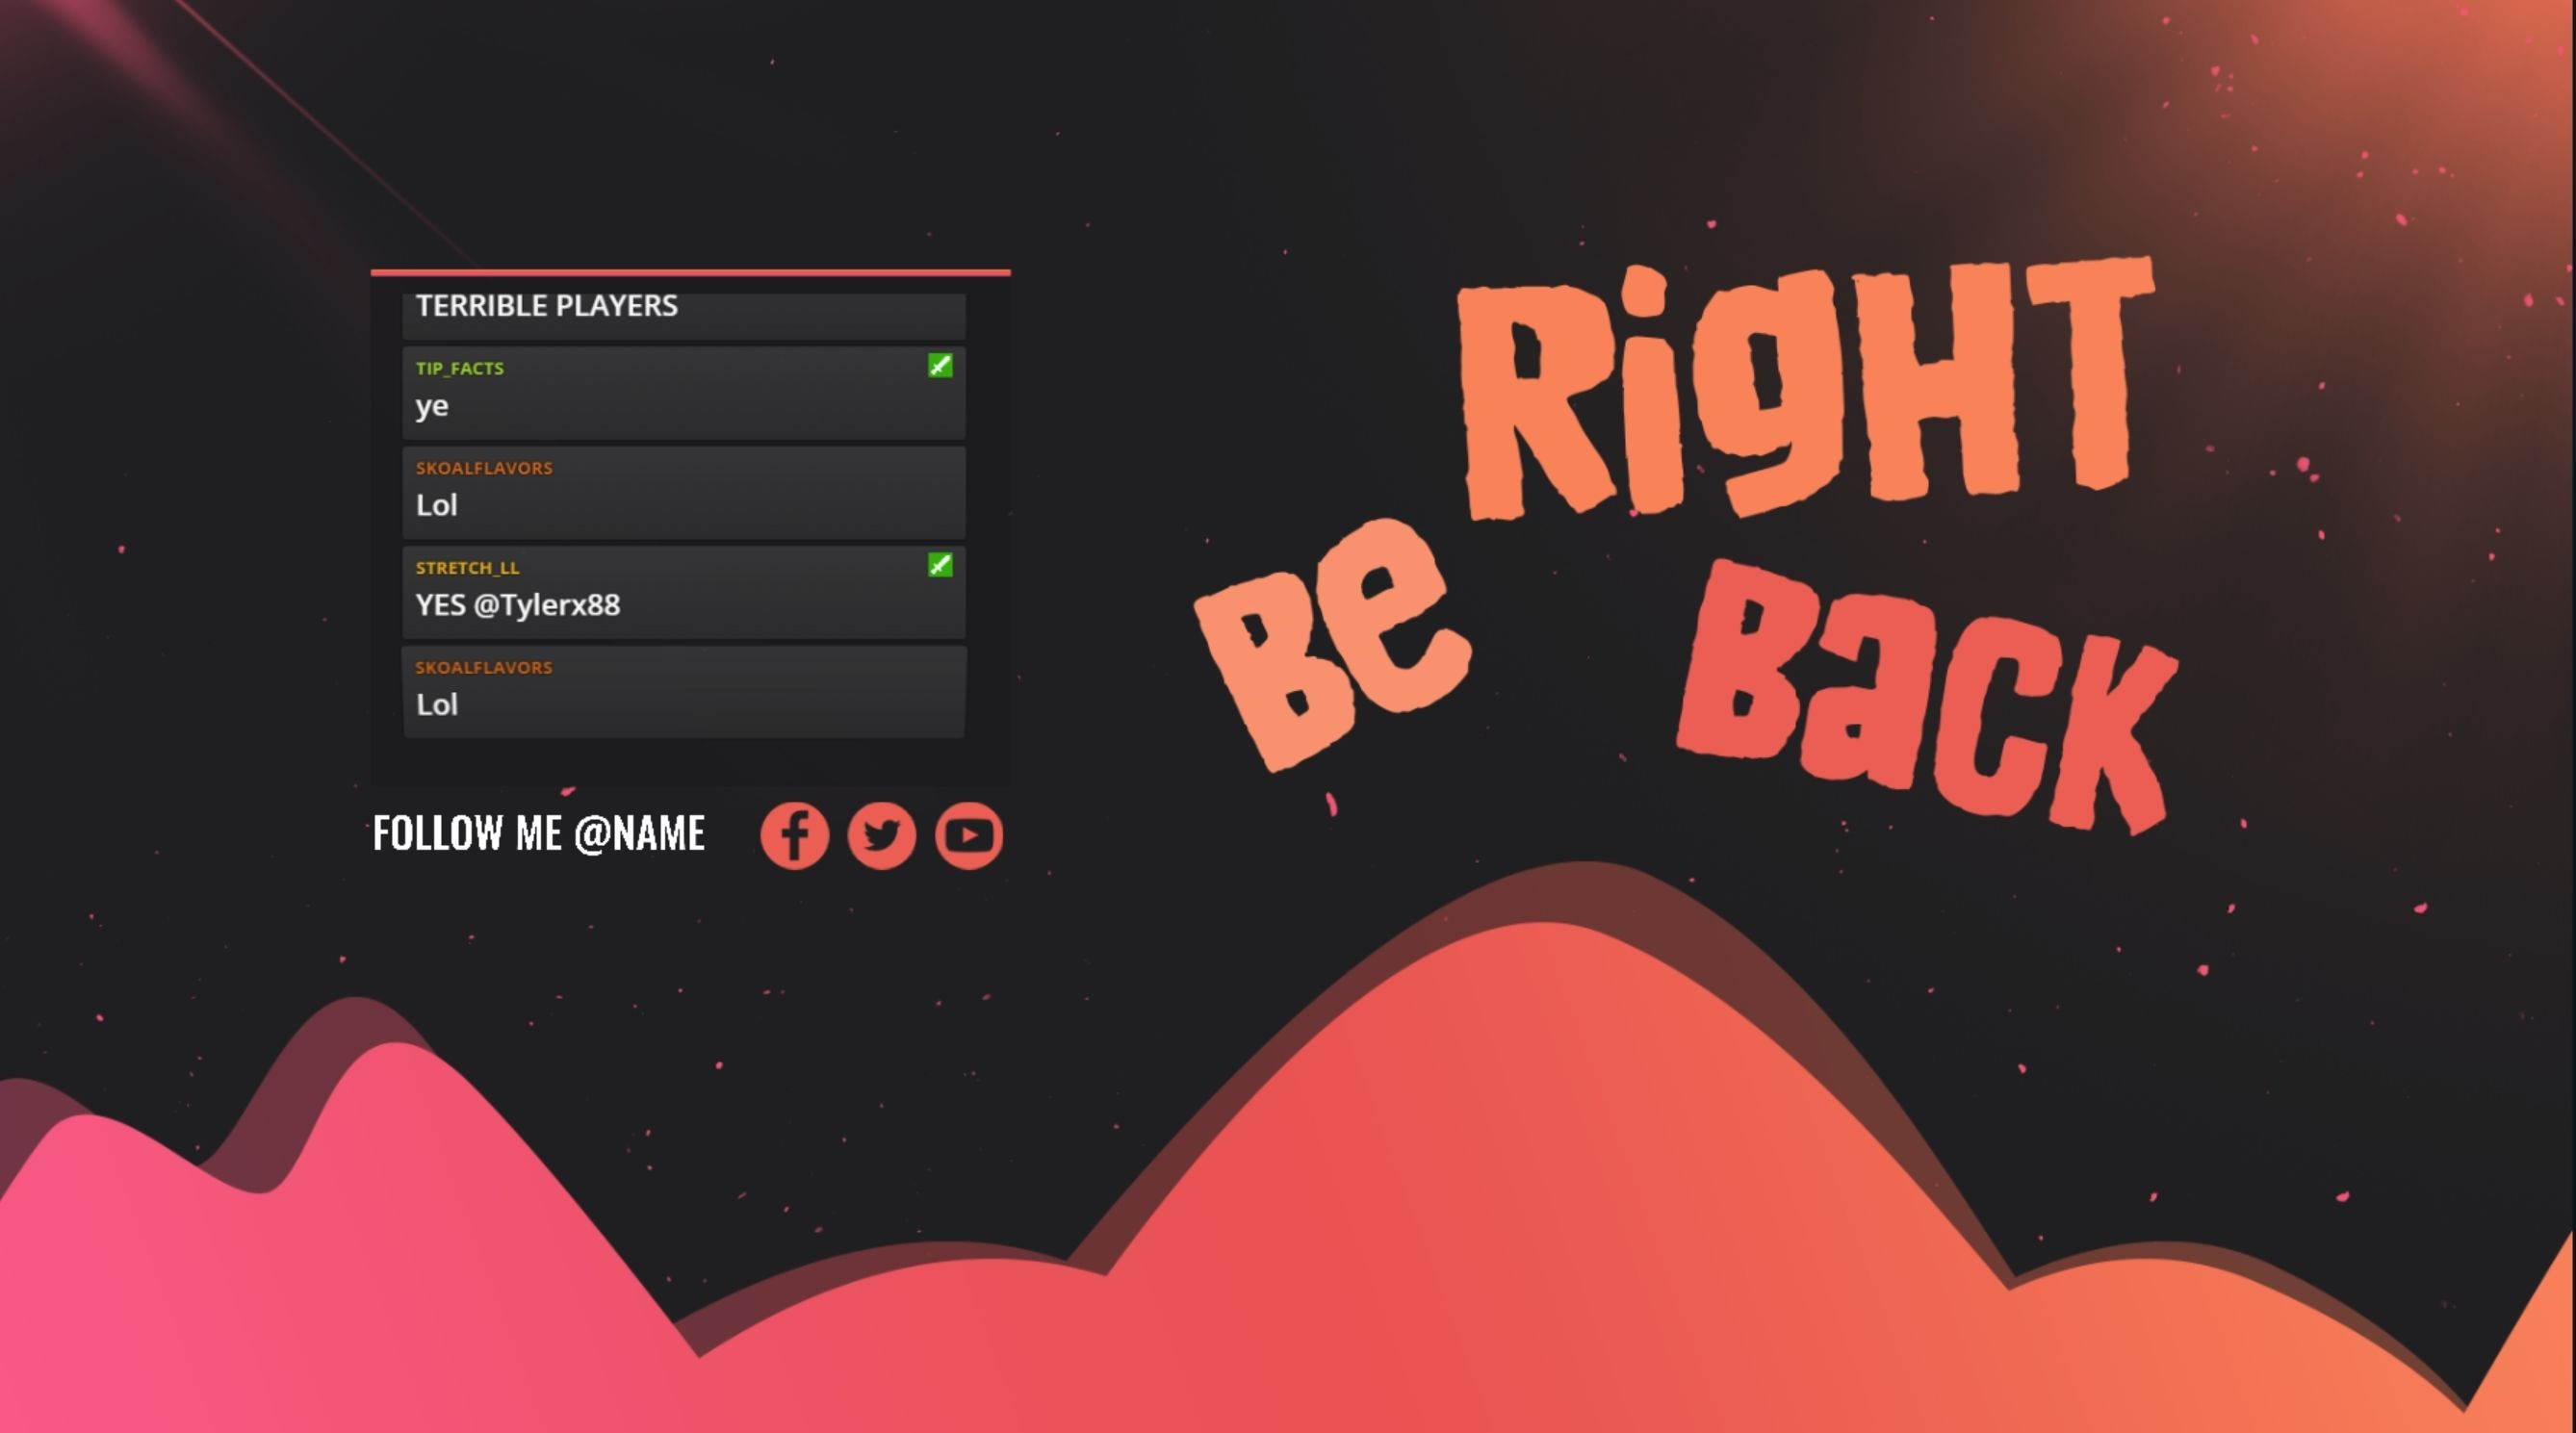 Library / Streamlabs | Twitch inspiration | Software